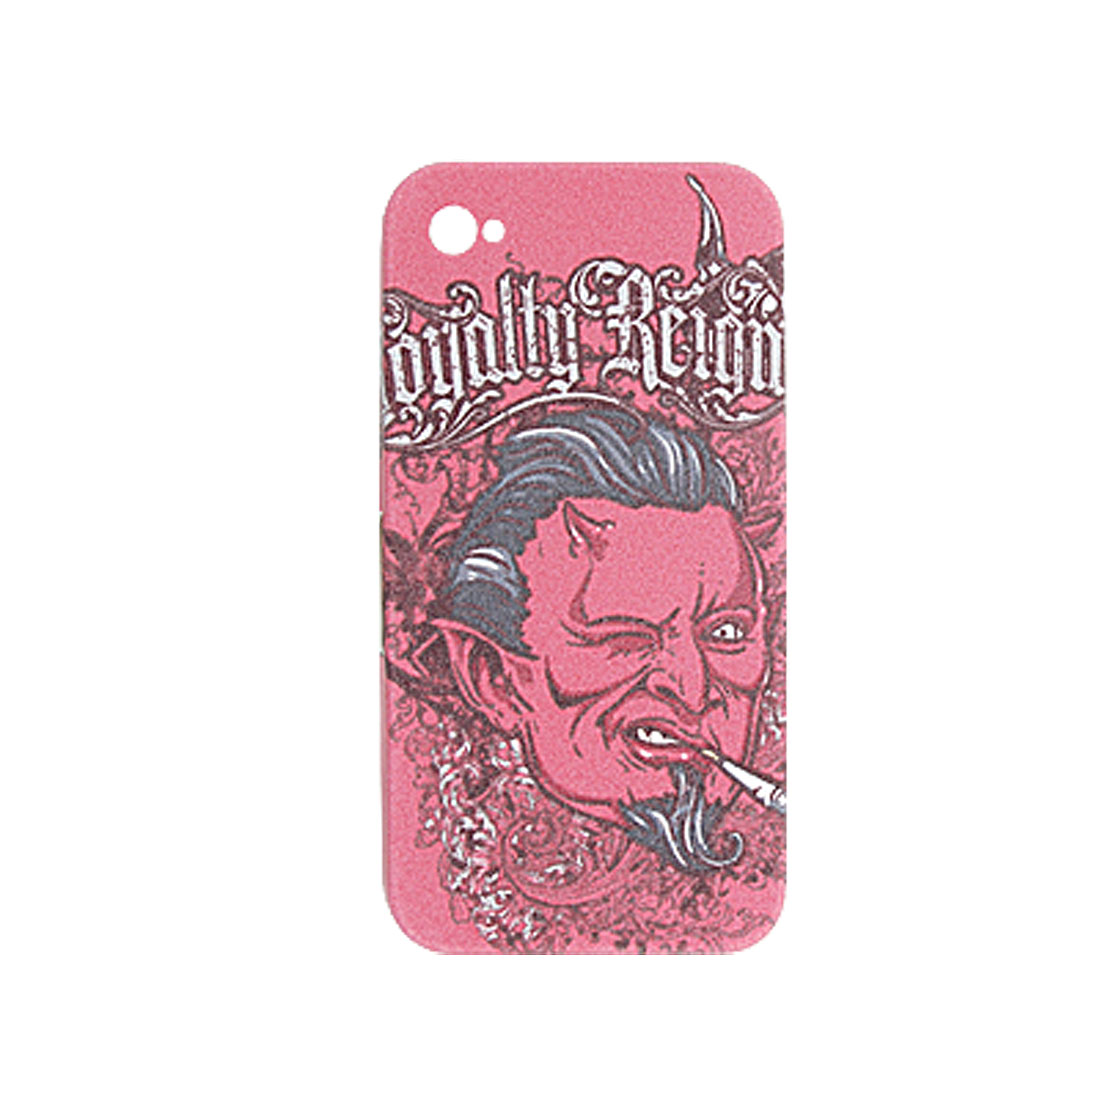 Man Head Style Pink Hard Plastic Case for iPhone 4 4G